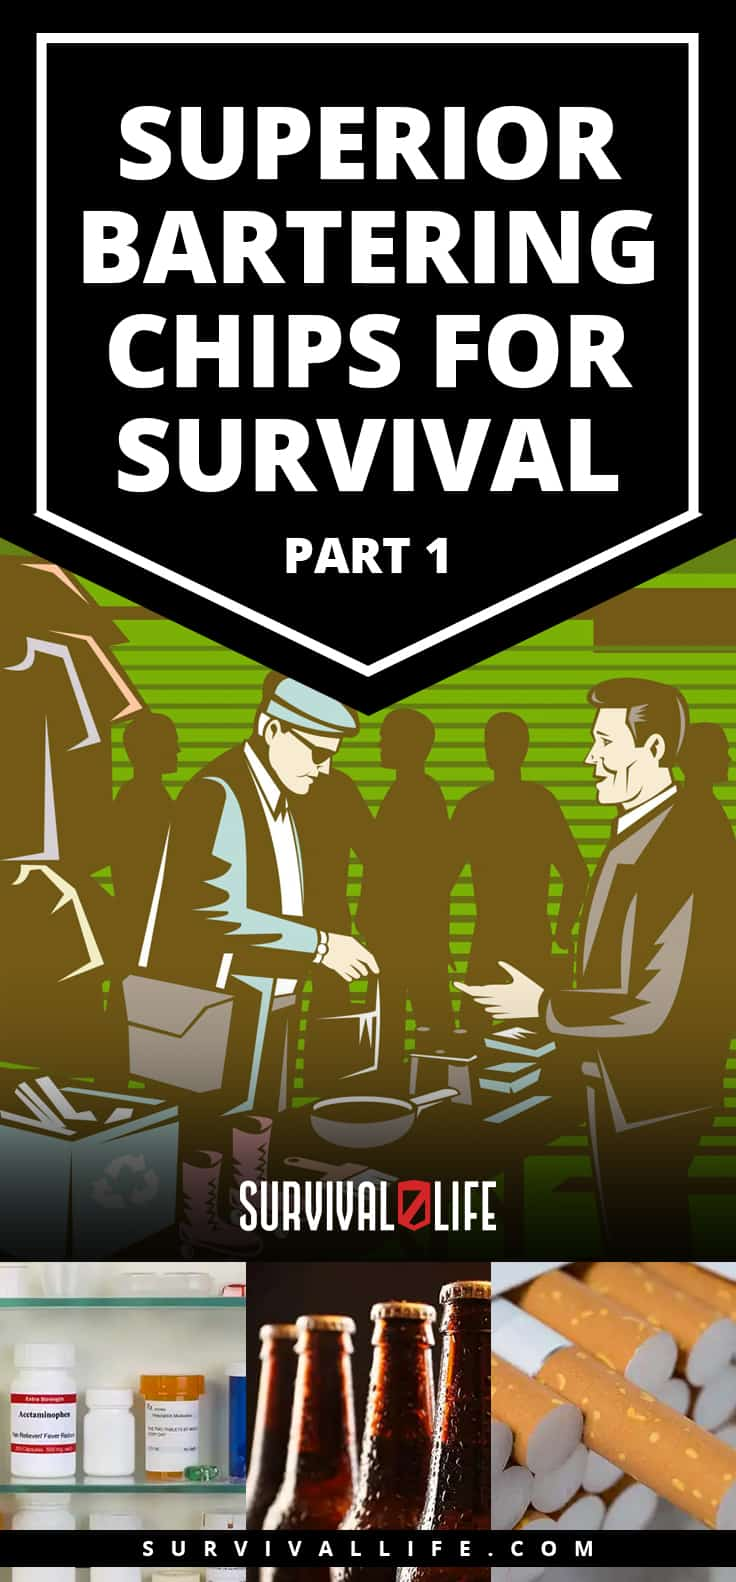 Superior Bartering Chips For Survival Situations: Part 1